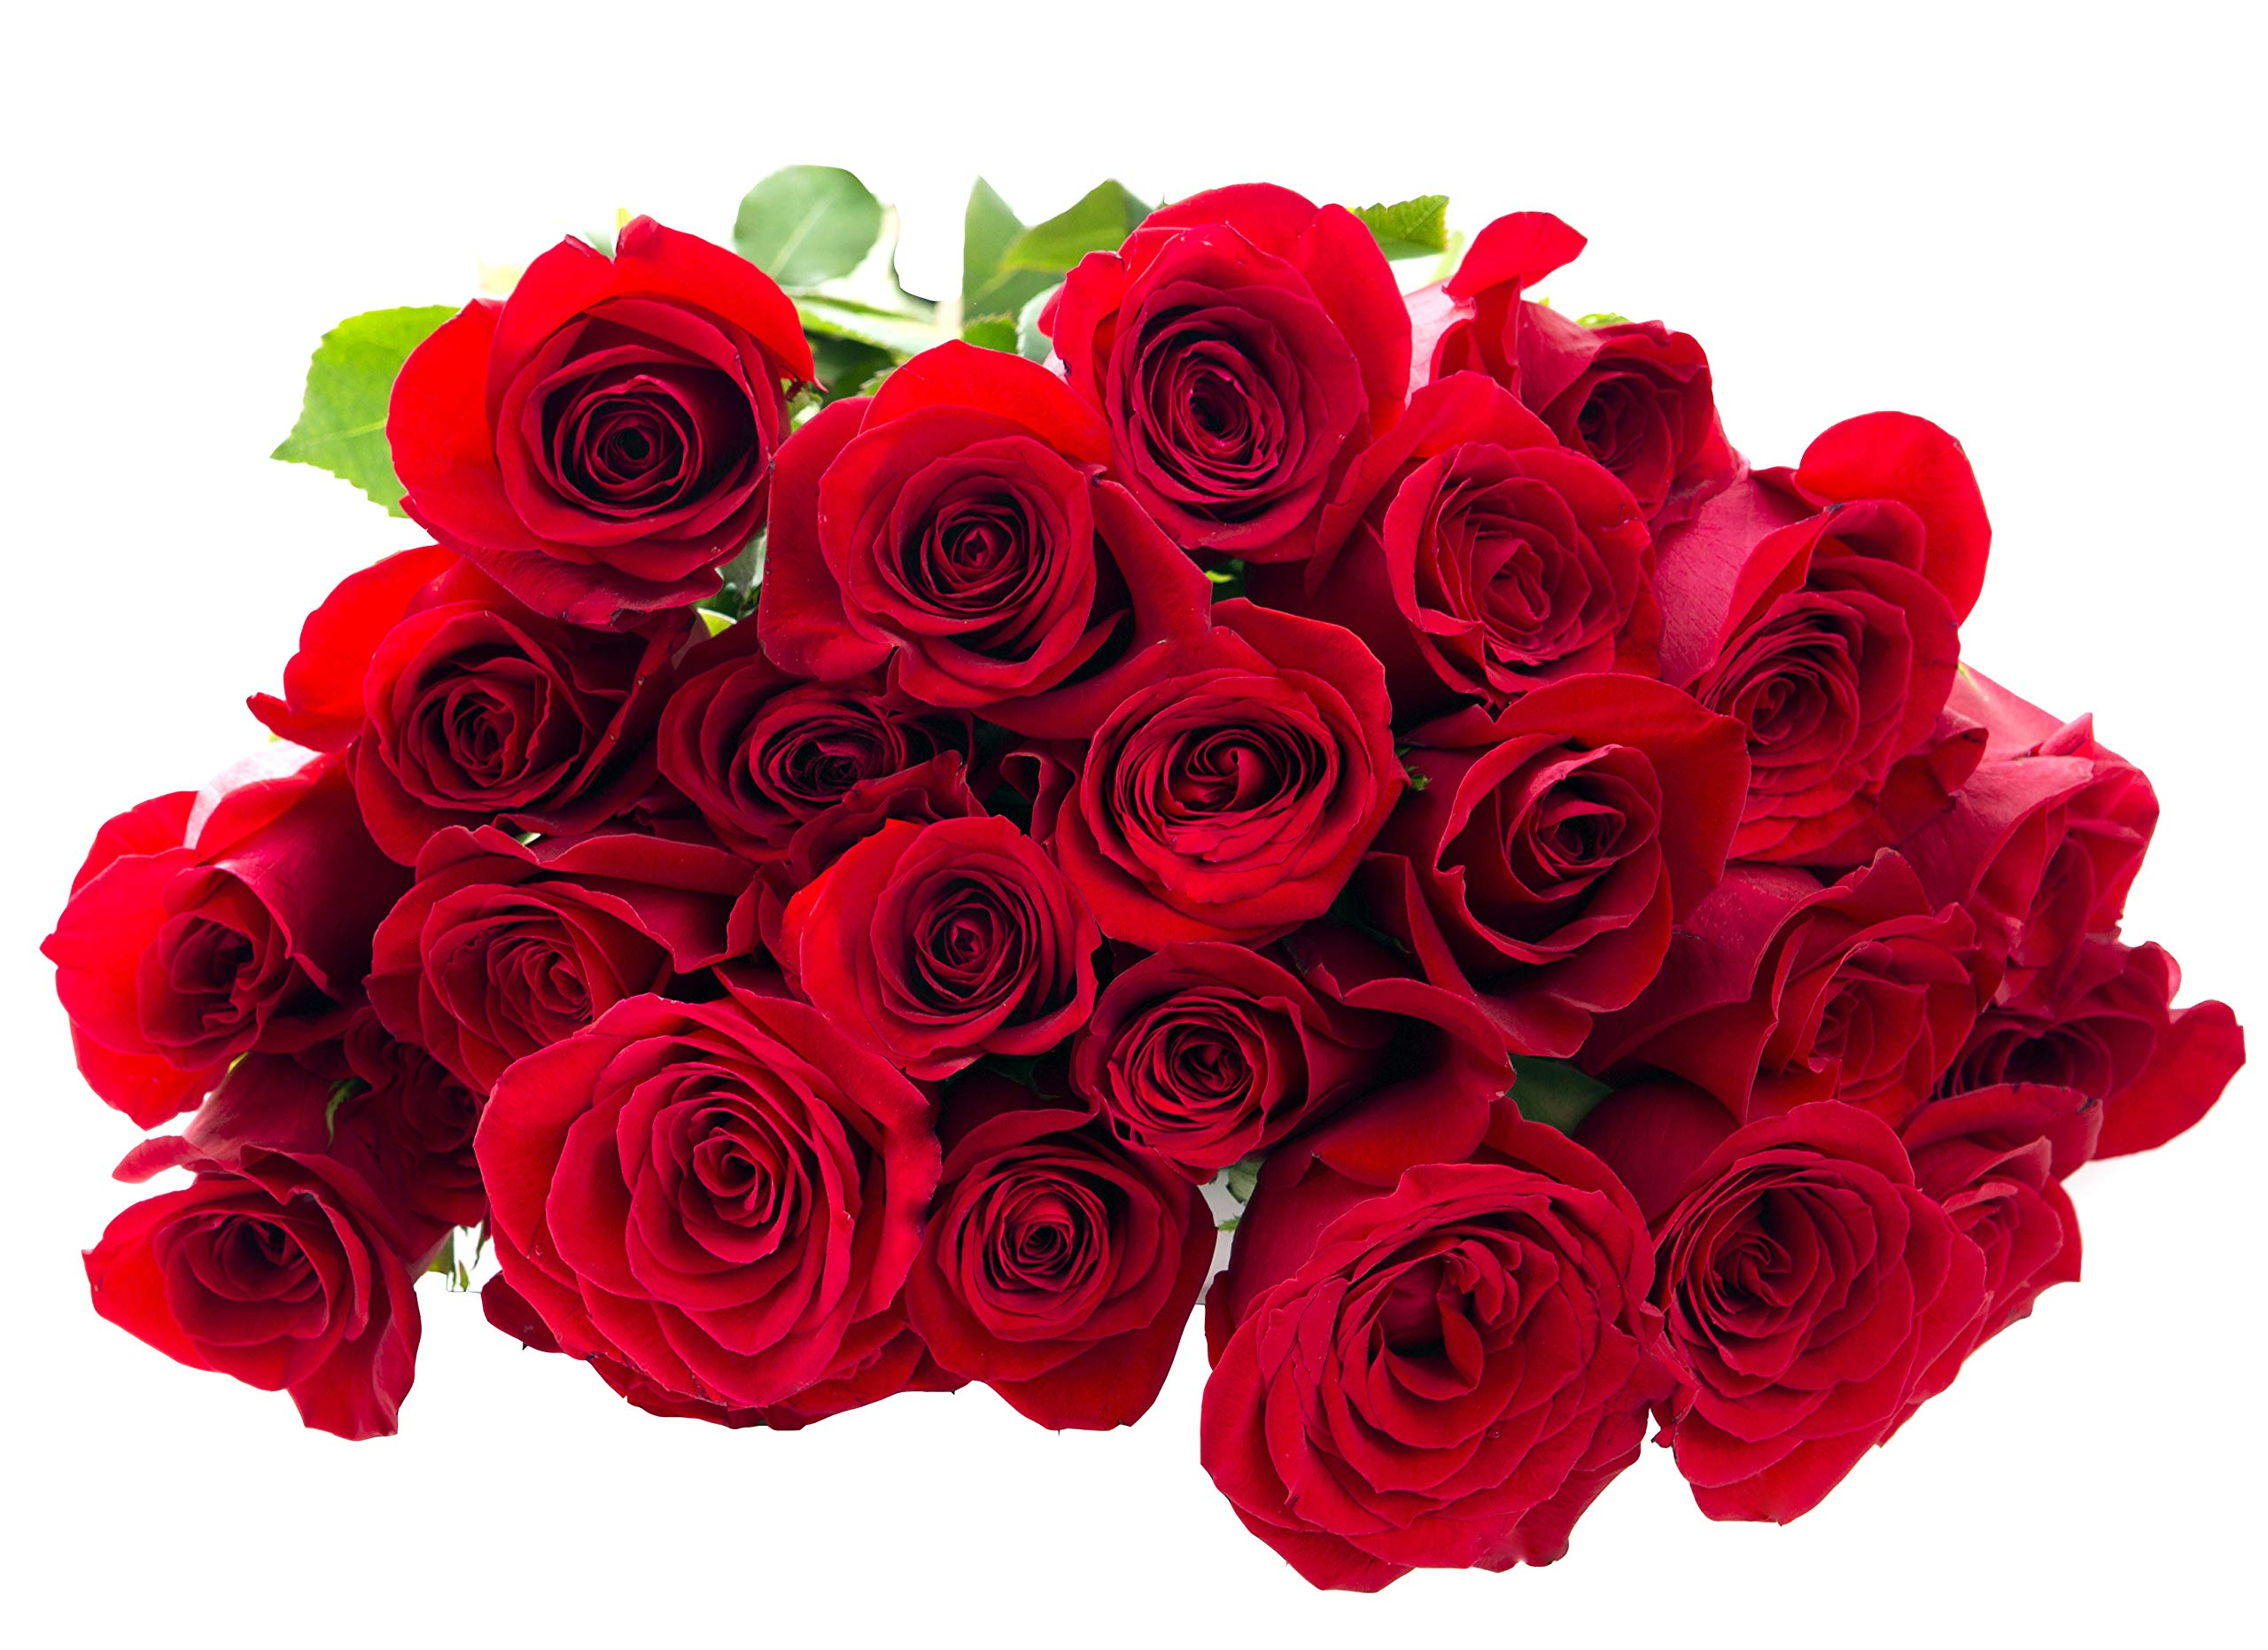 Blooms2Door 25 Red Roses (Farm-Fresh, Long Stem - 50cm) - Farm Direct Wholesale Fresh Flowers